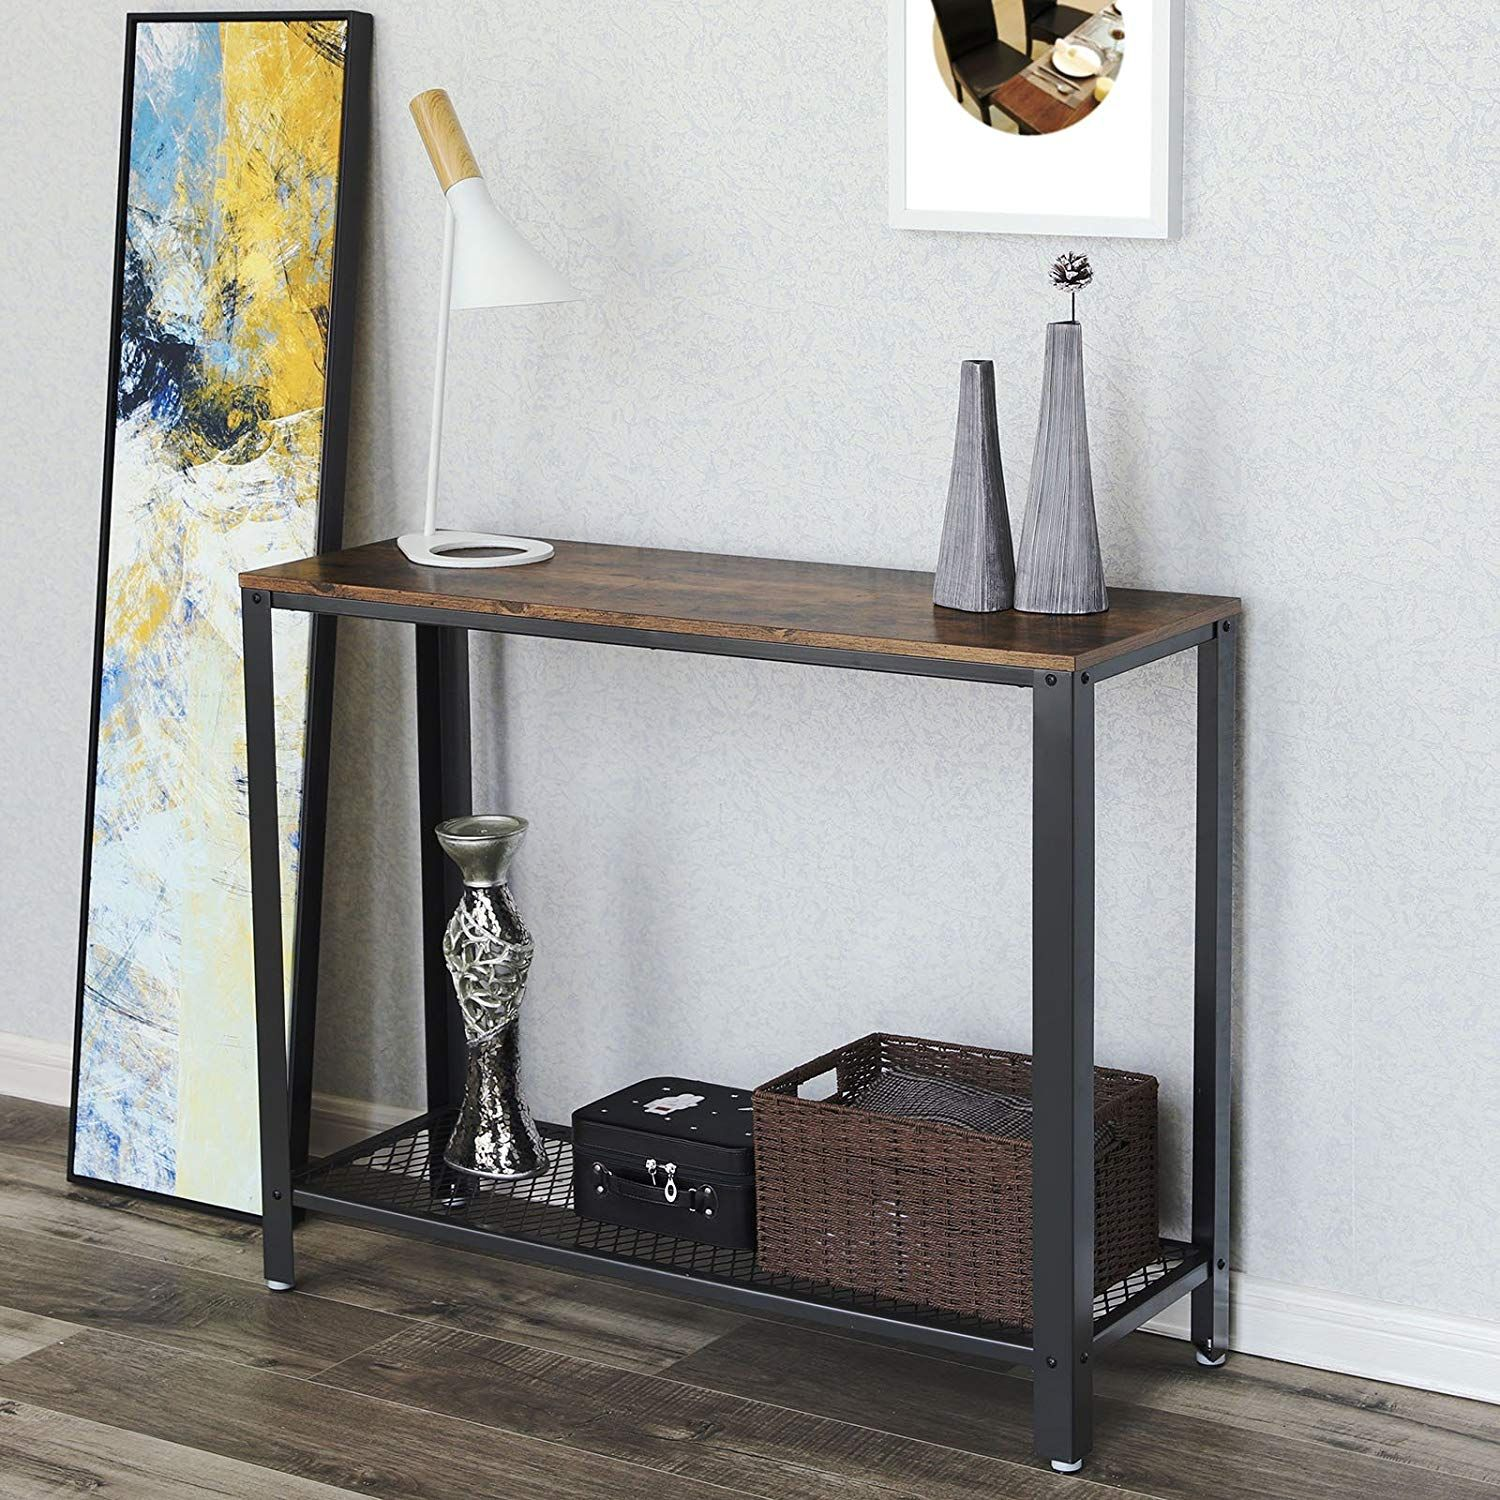 Songmics Vintage Console Table Entryway Table Sofa Table For